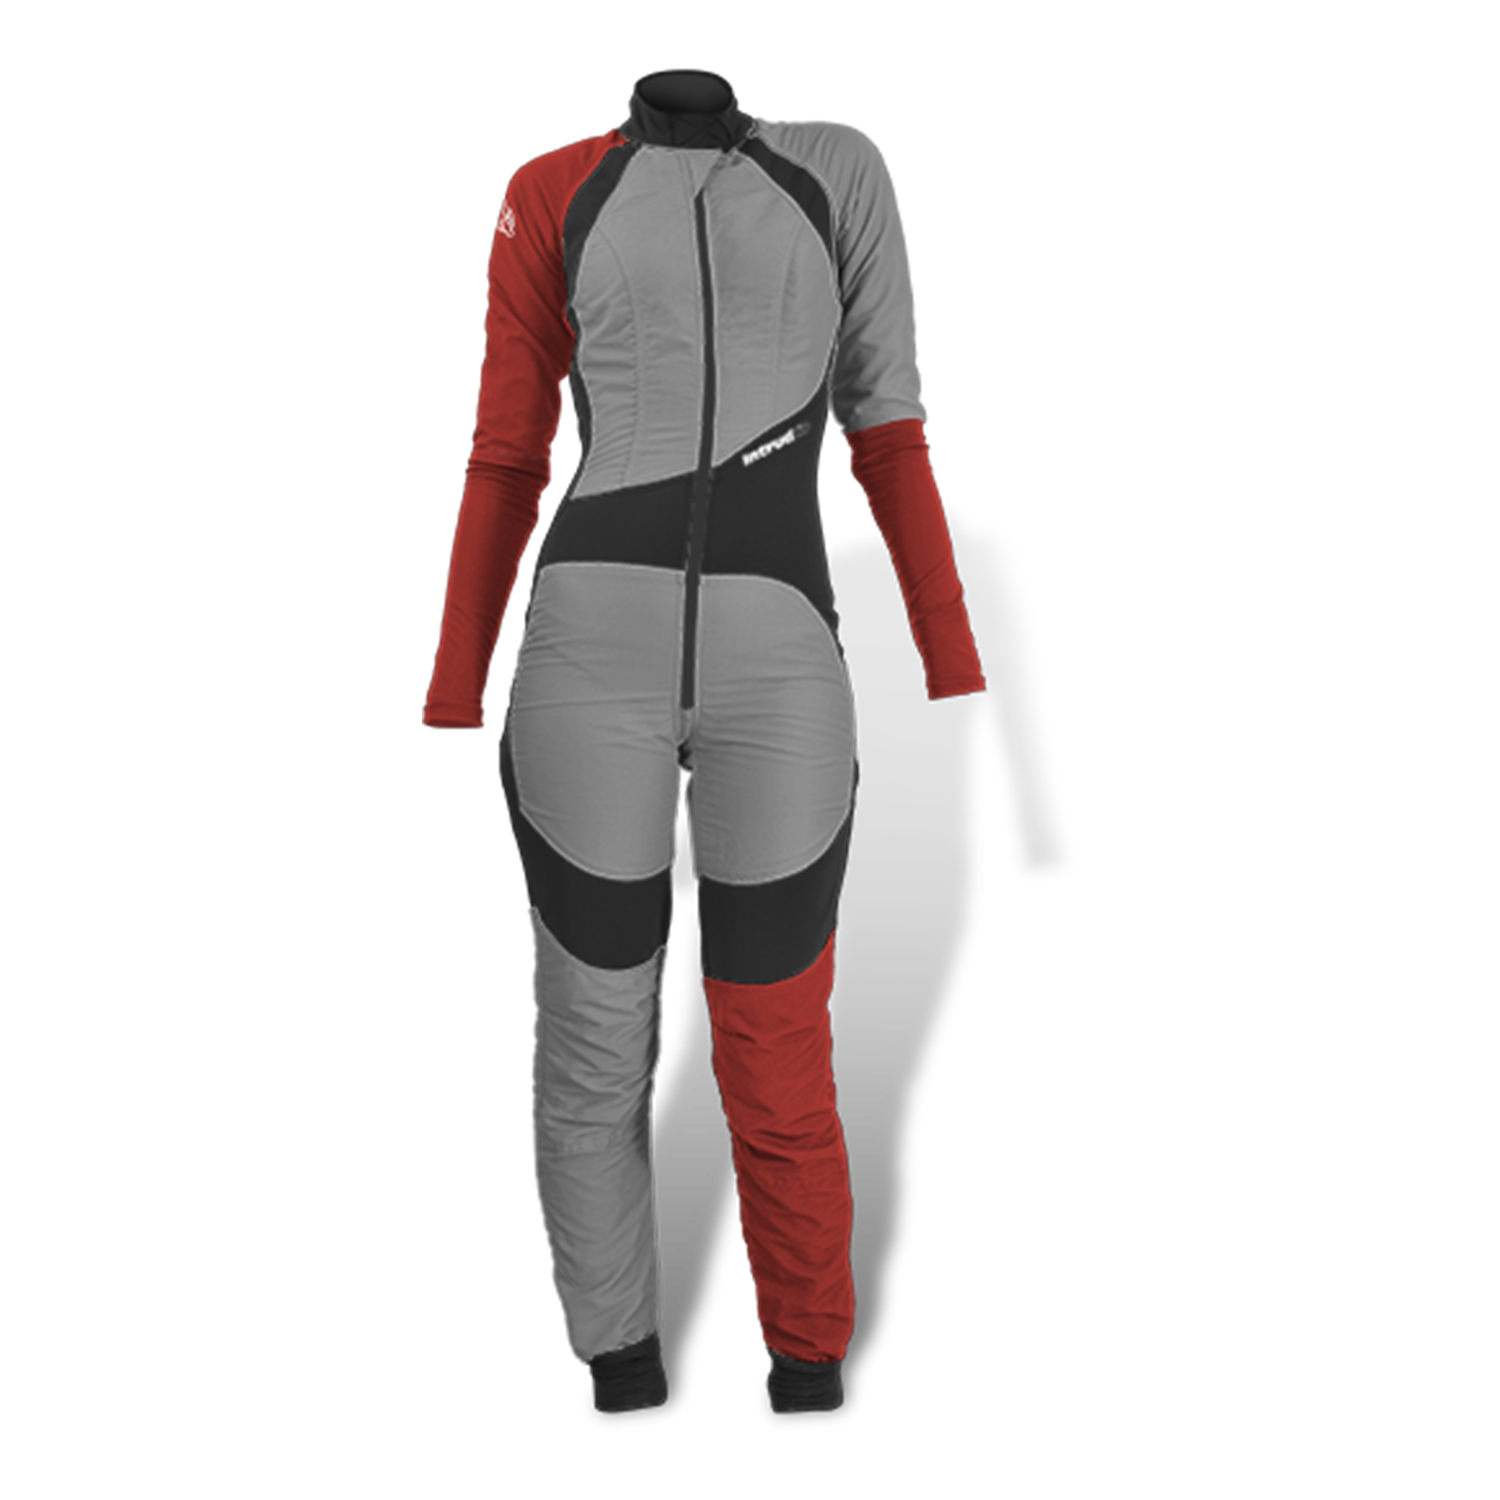 Freefly Femme [S] Red/Grey